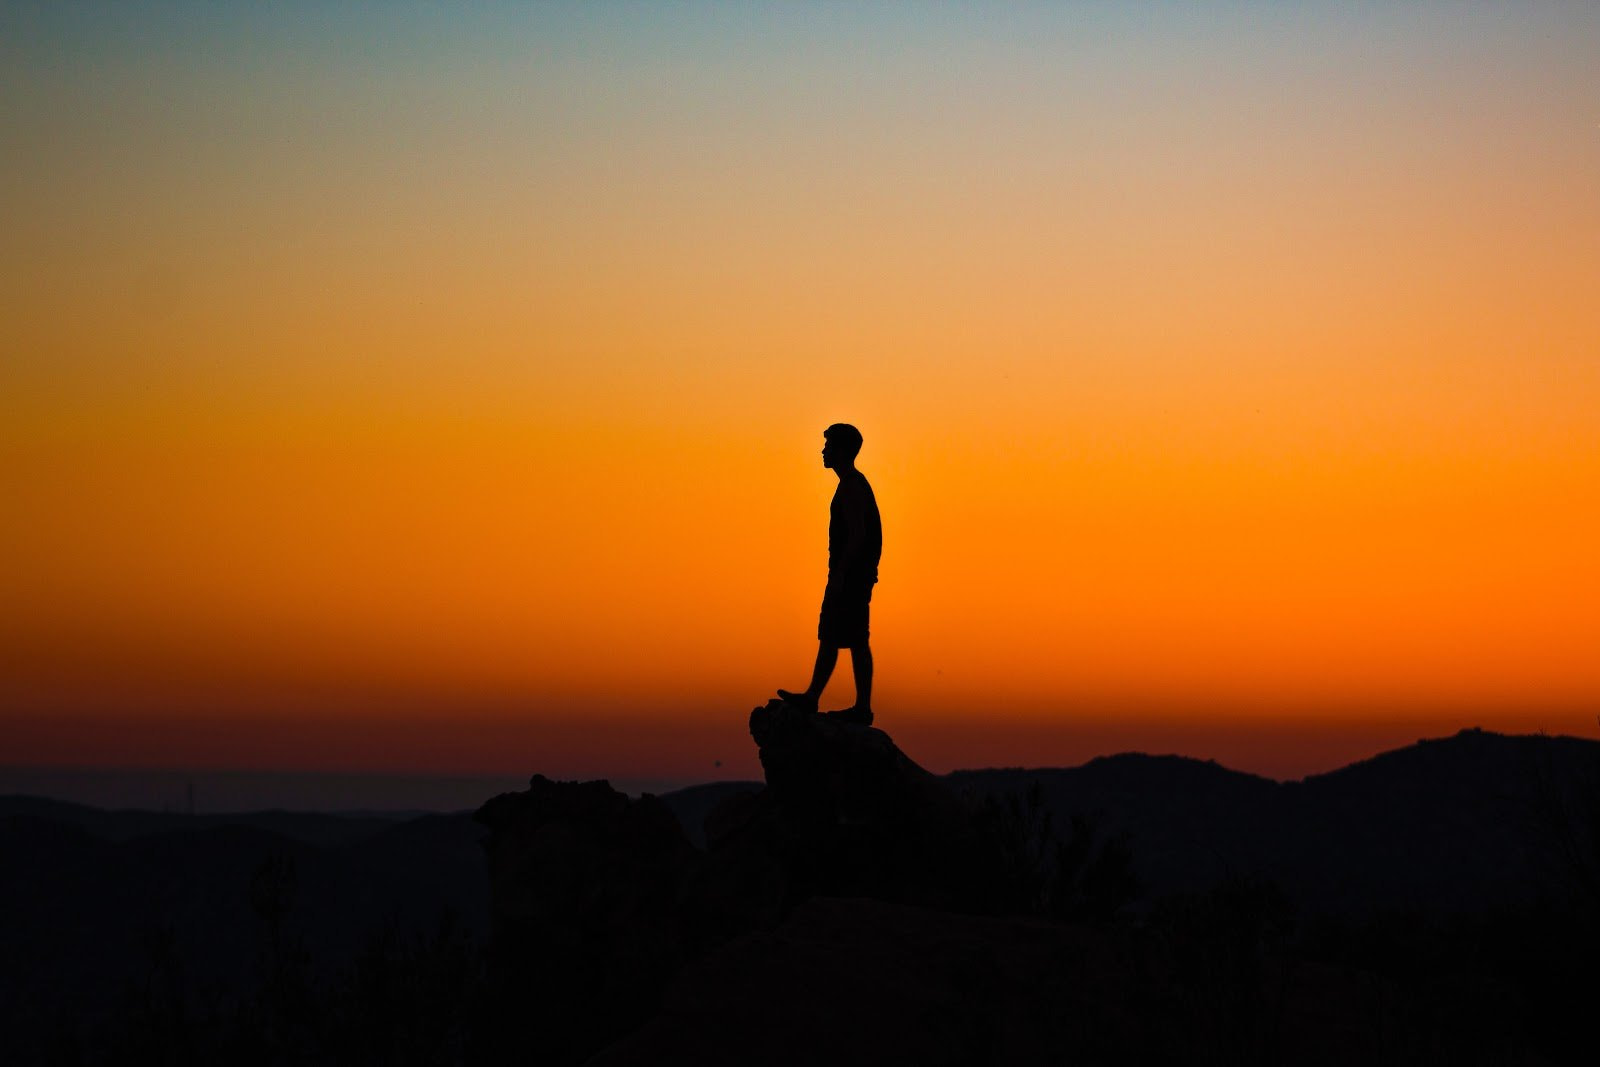 Silhouette of a man standing on a cliff by Austin Mabe